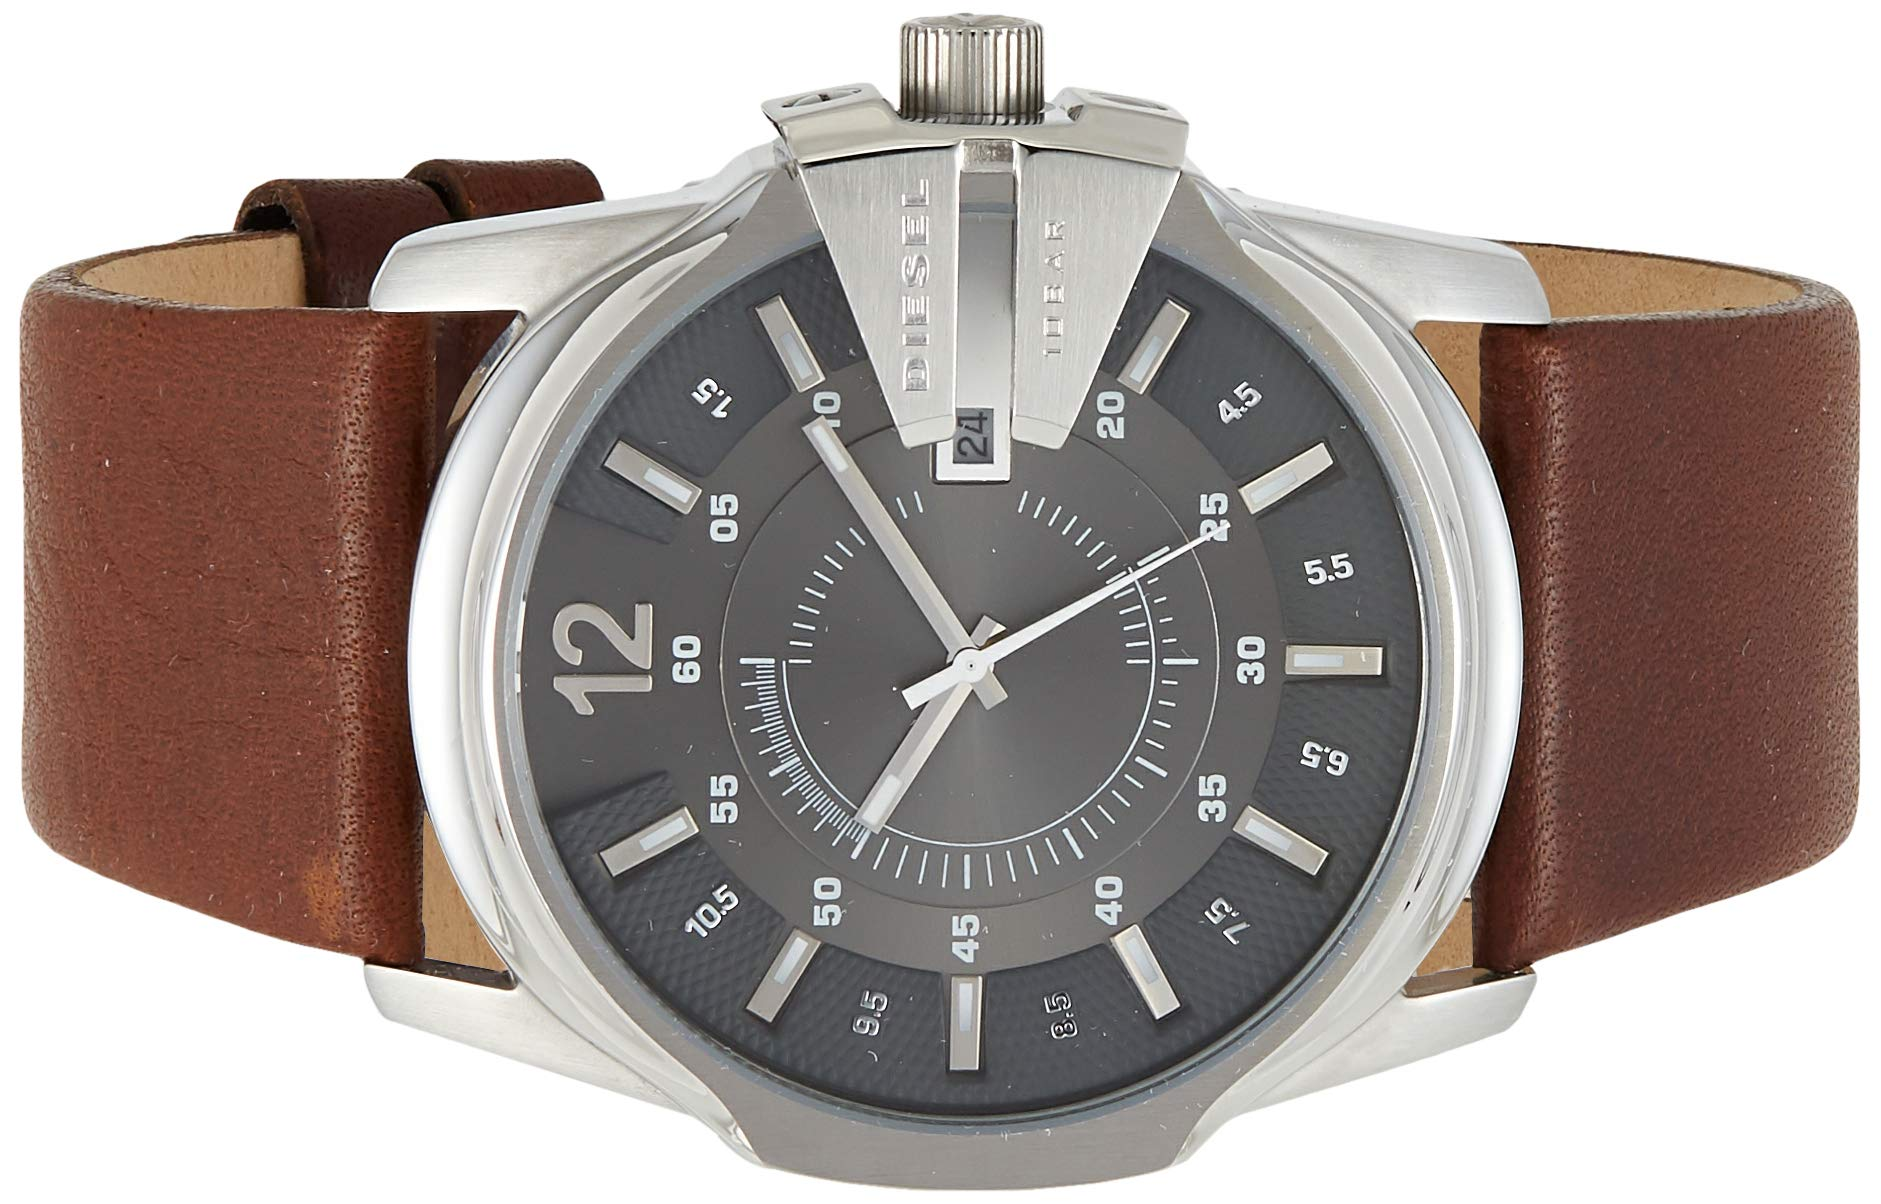 Diesel Men's Master Chief Quartz Stainless Steel and Leather Casual Watch, Color: Silver-Tone, Brown (Model: DZ1206) by Diesel